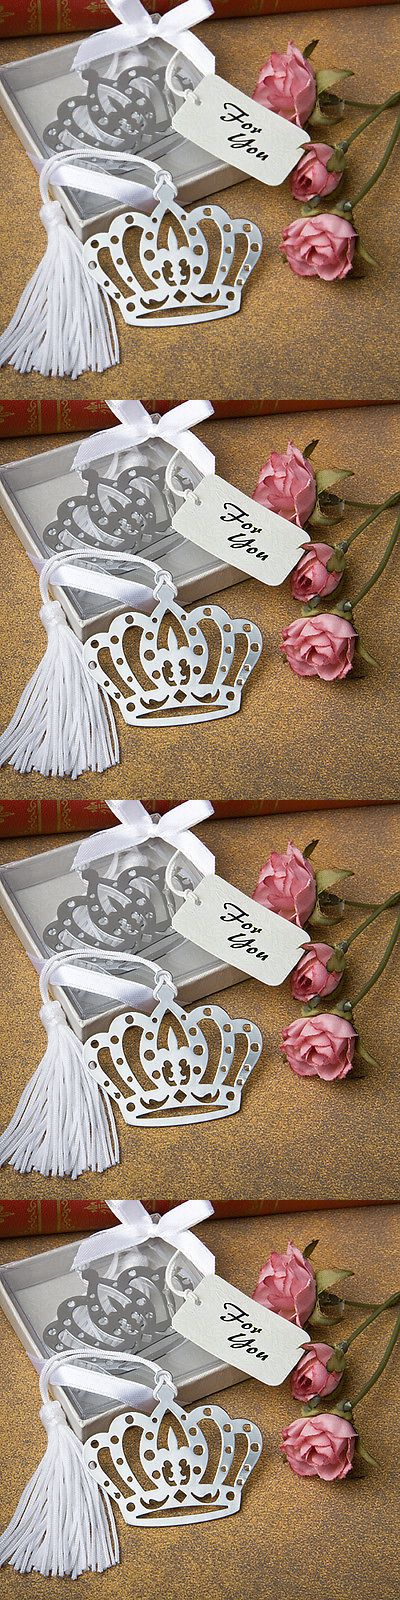 Favors and Party Bag Fillers 26385: 100 Royal Crown Design Bookmark Bridal Shower Party Wedding Favor Bulk Lot -> BUY IT NOW ONLY: $114.89 on eBay!